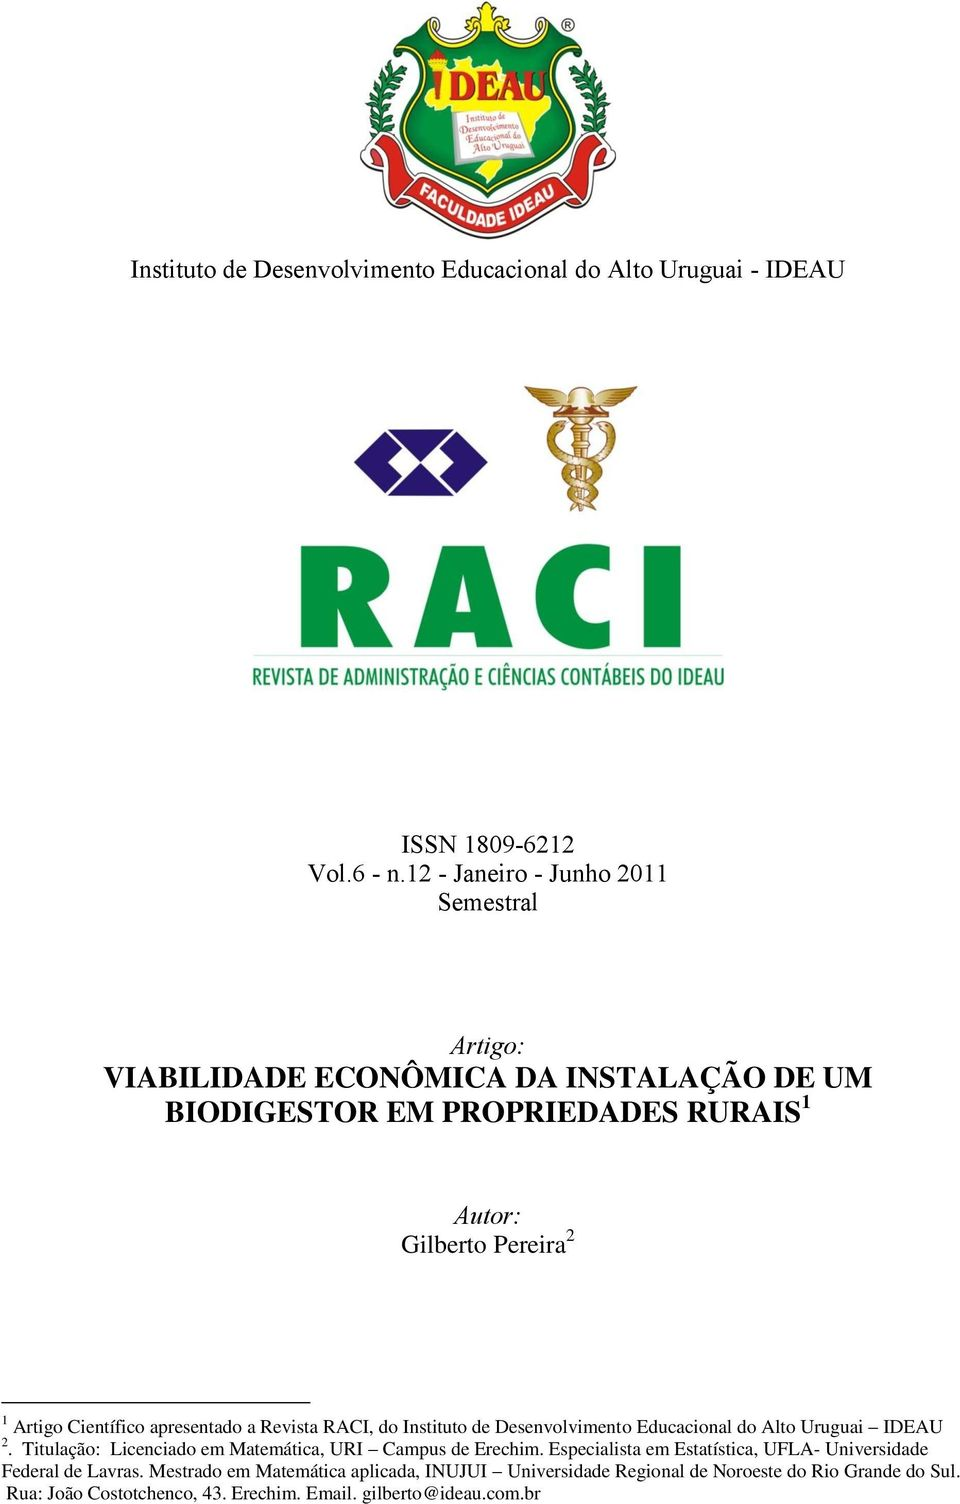 Científico apresentado a Revista RACI, do Instituto de Desenvolvimento Educacional do Alto Uruguai IDEAU 2.